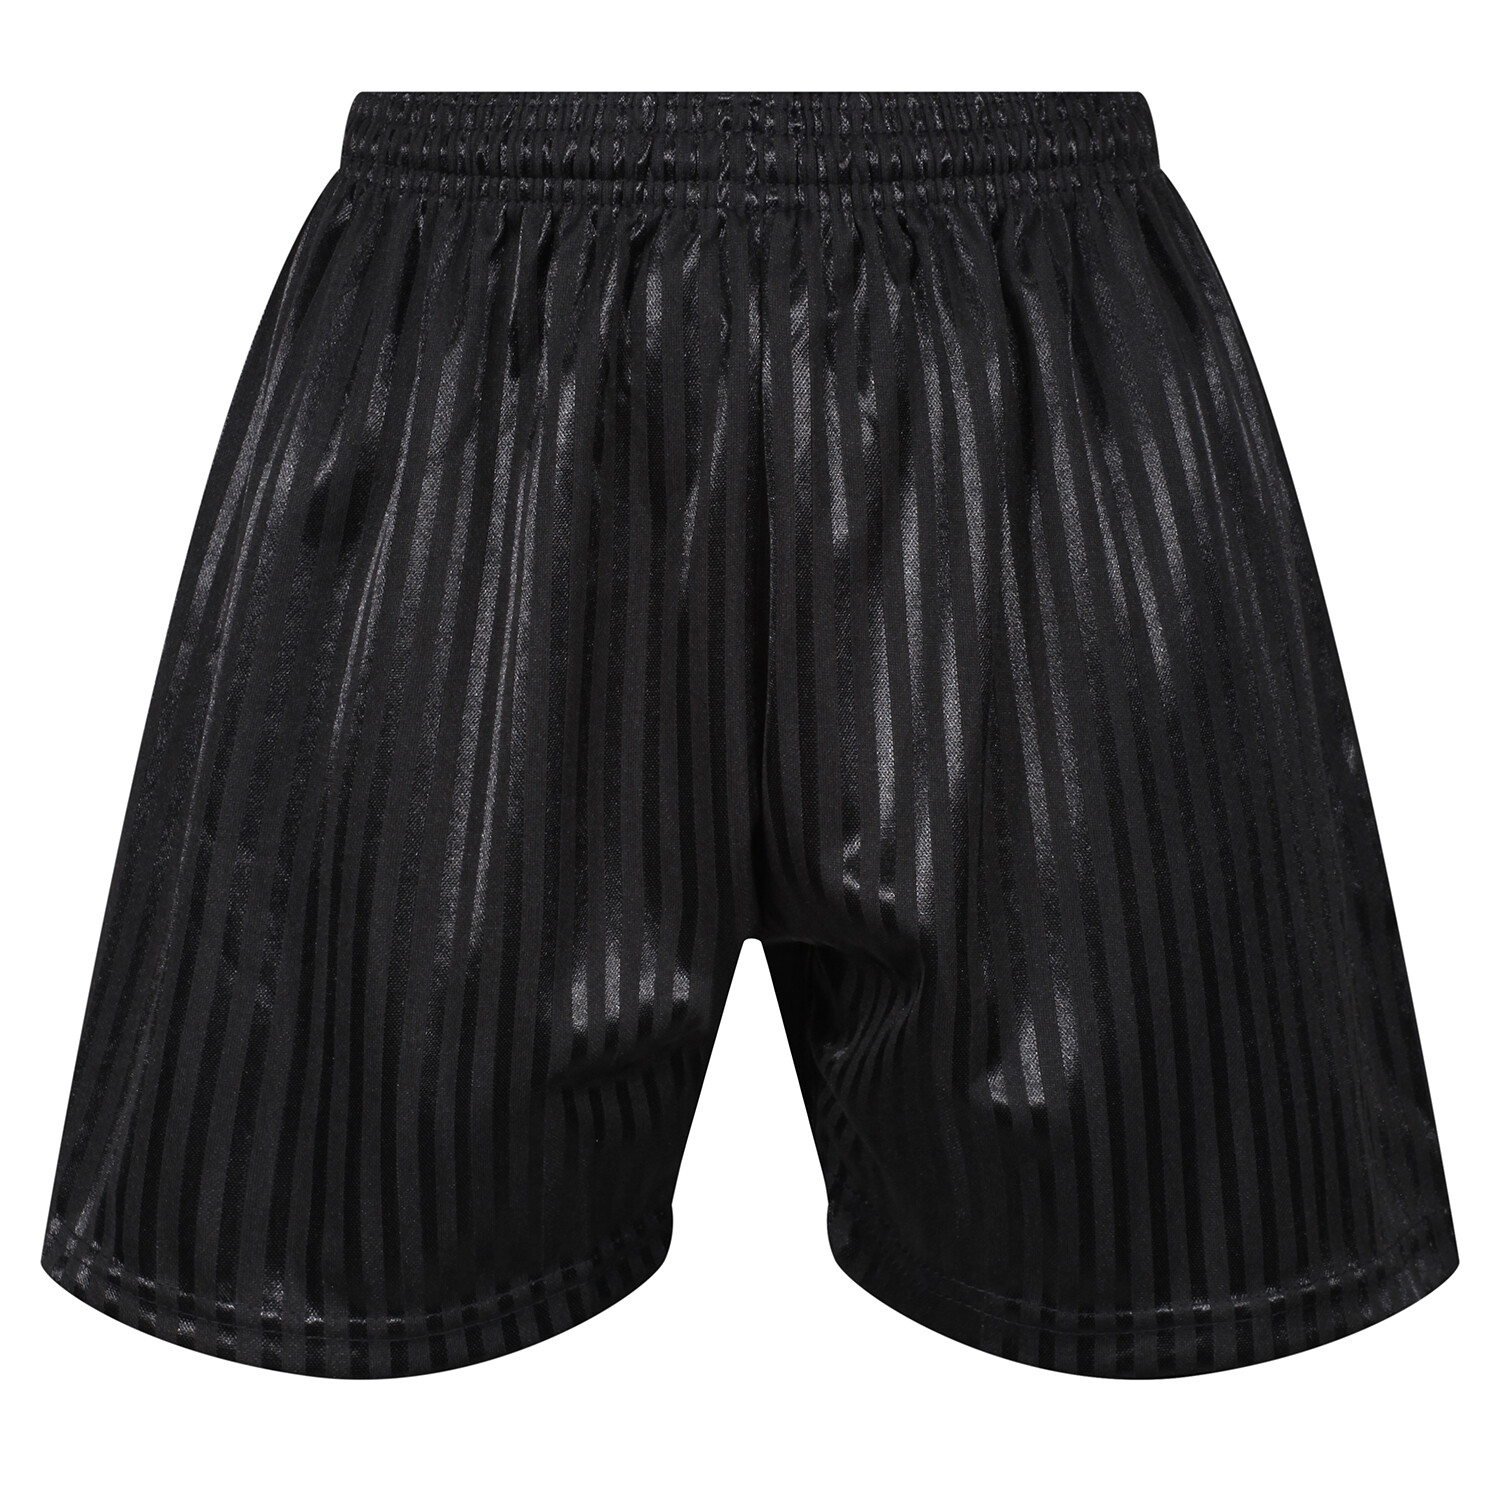 Largs Academy PE Shorts